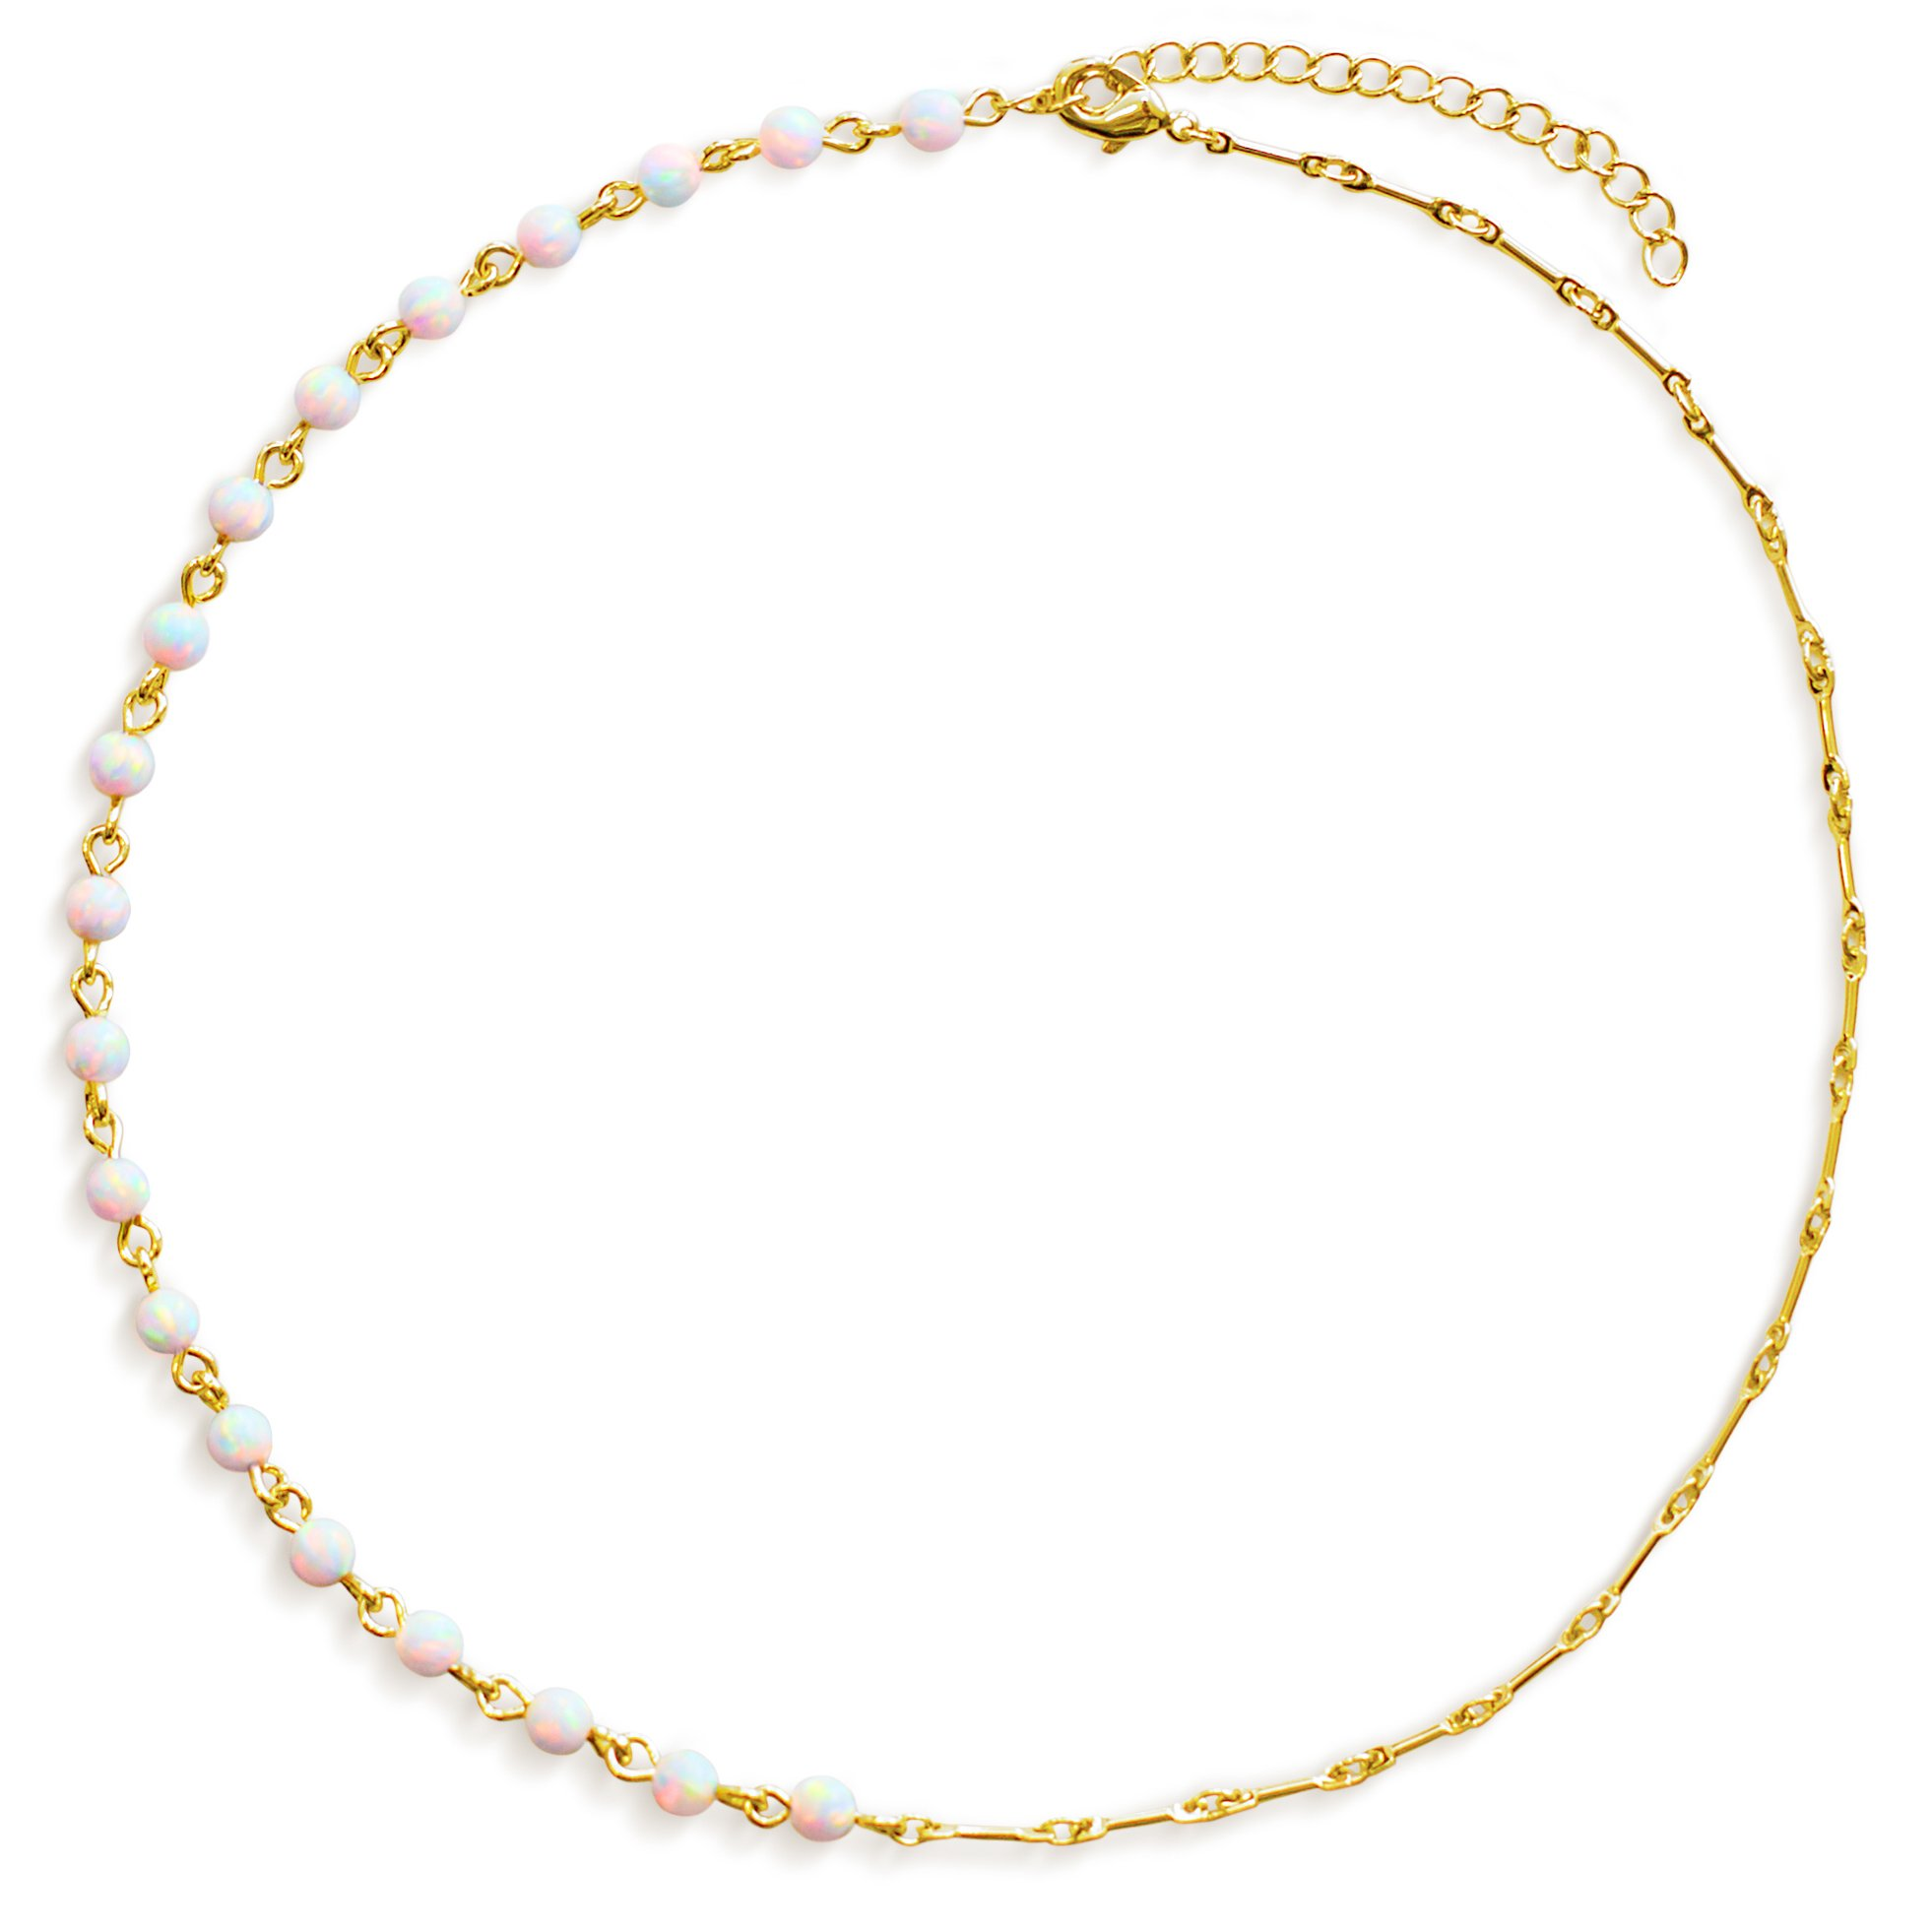 "Benevolence LA Boho Necklace Jewelry for Women: White Opal Beads 14K Gold Dipped Bars Unique Design Choker Style Necklaces (13"")"